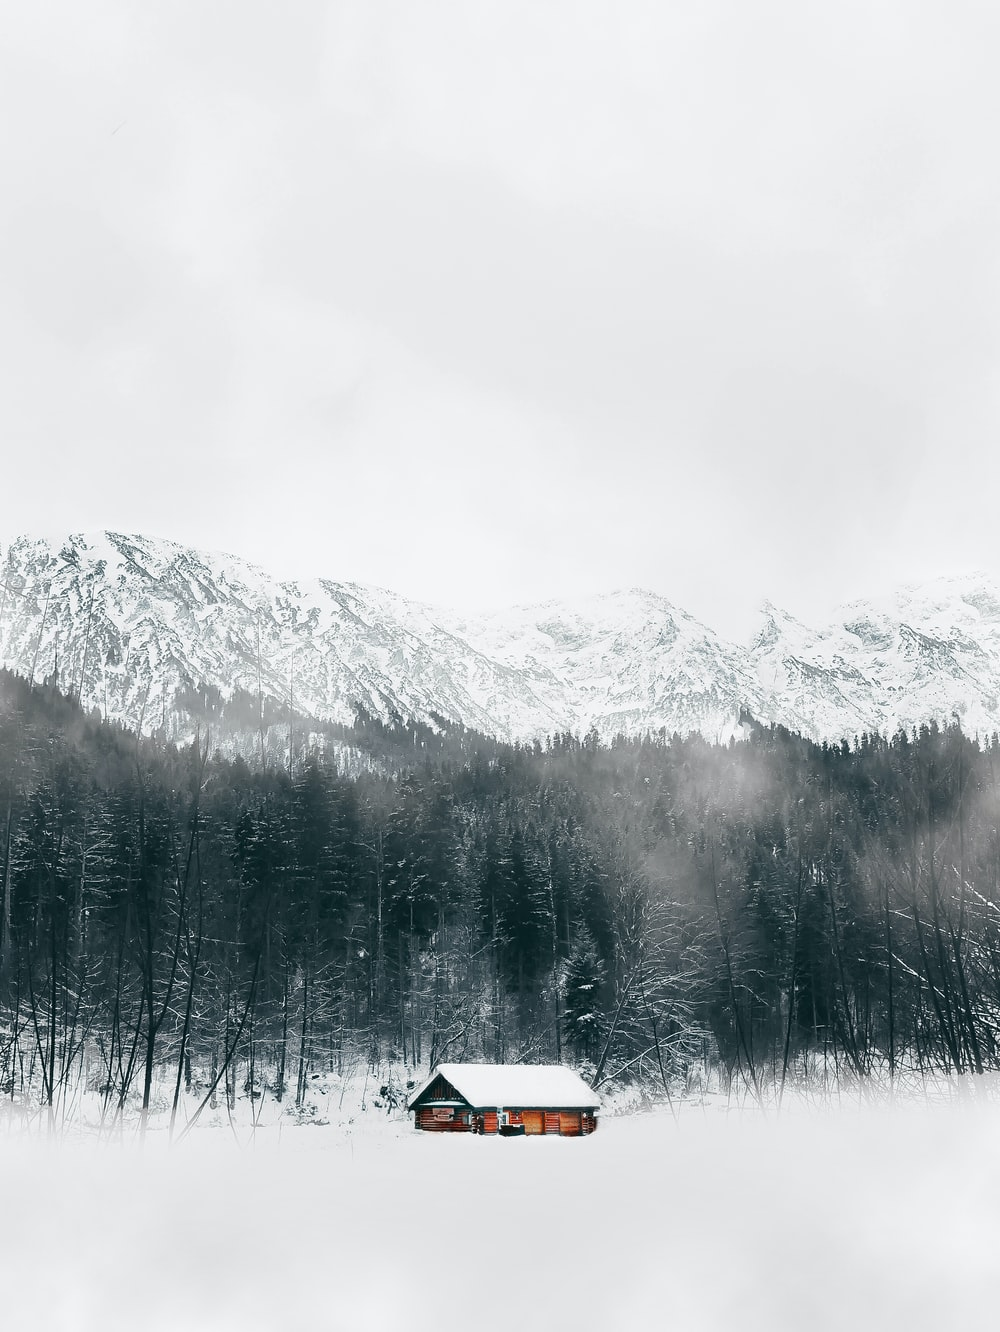 brown house near trees and snow covered mountain during daytime